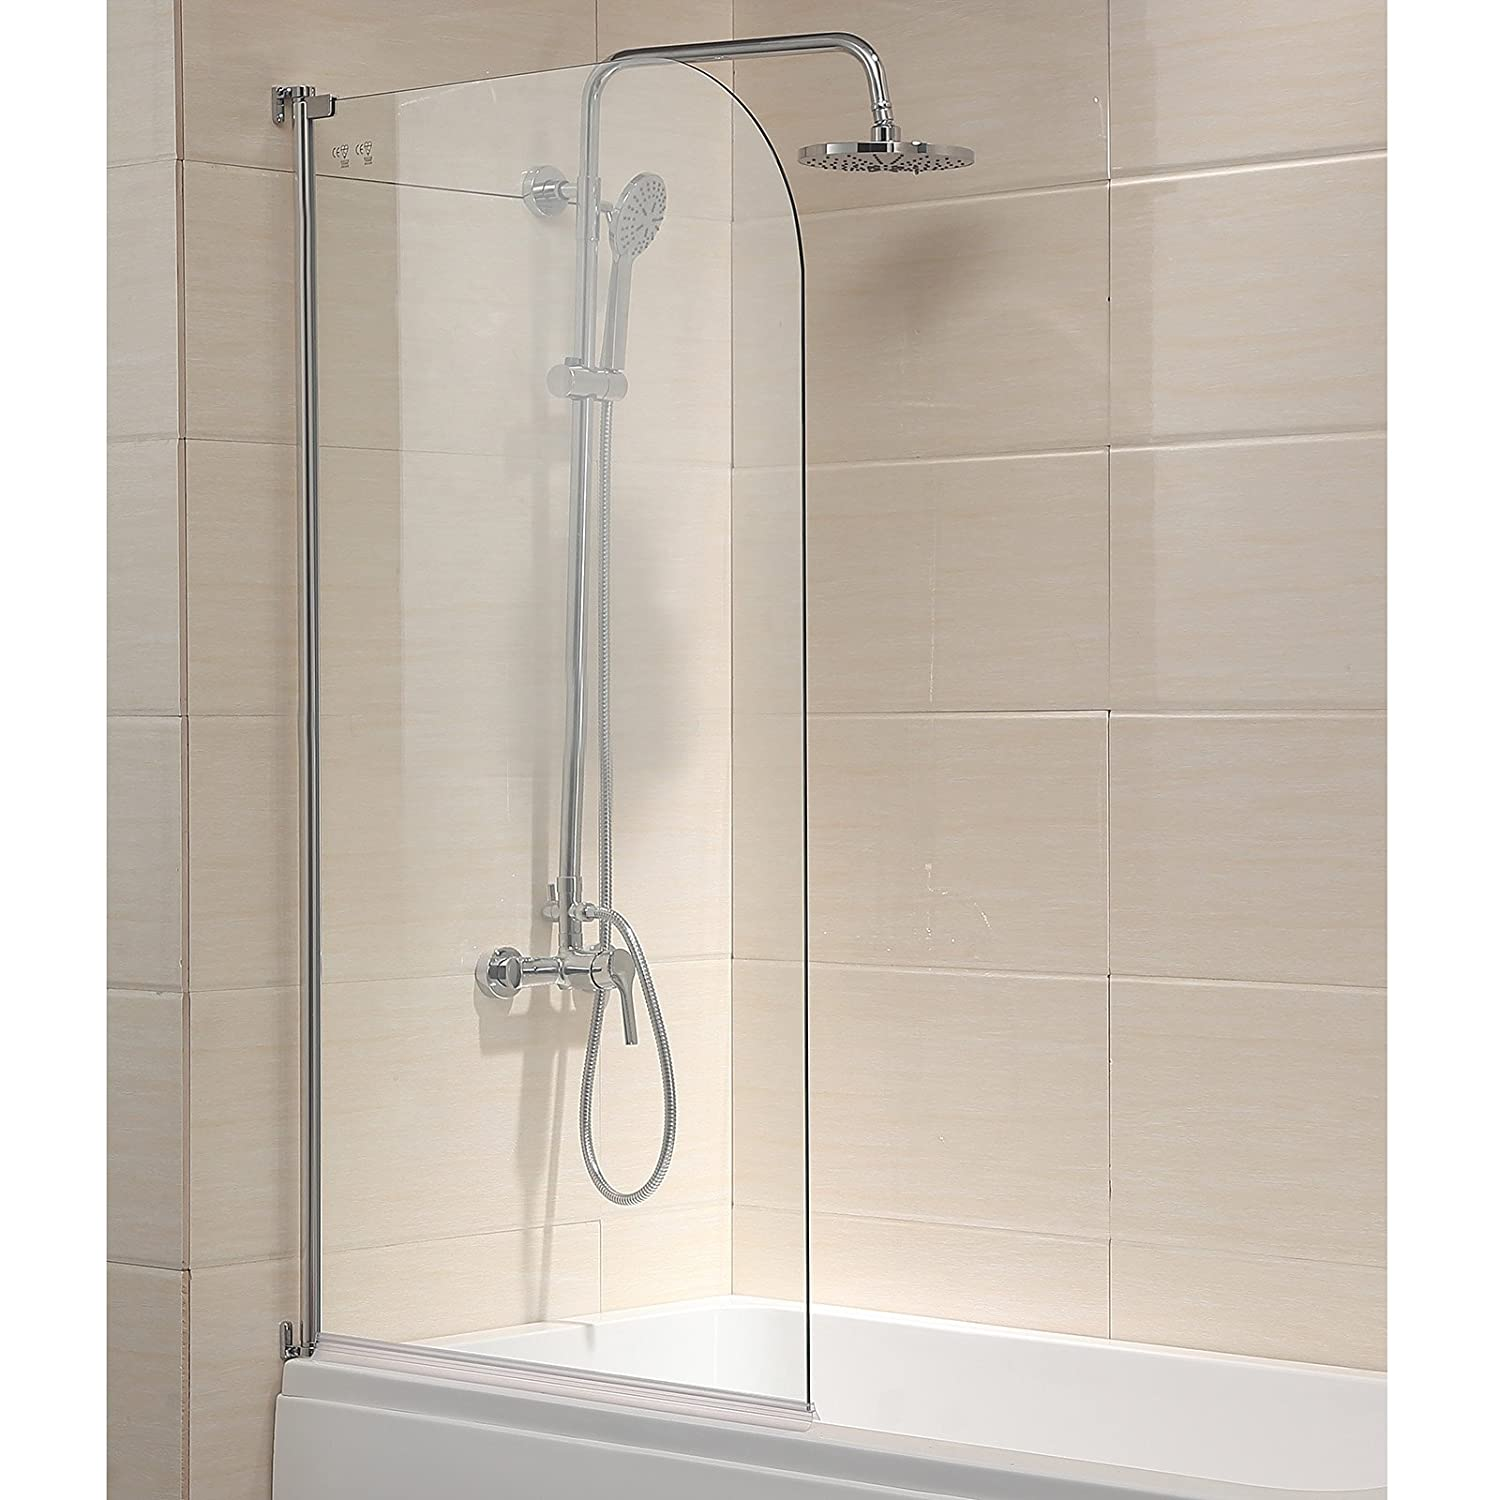 Mecor 55x31 bathtub shower door 1 4 clear glass hinged pivot radius frameless chrome finish amazon com